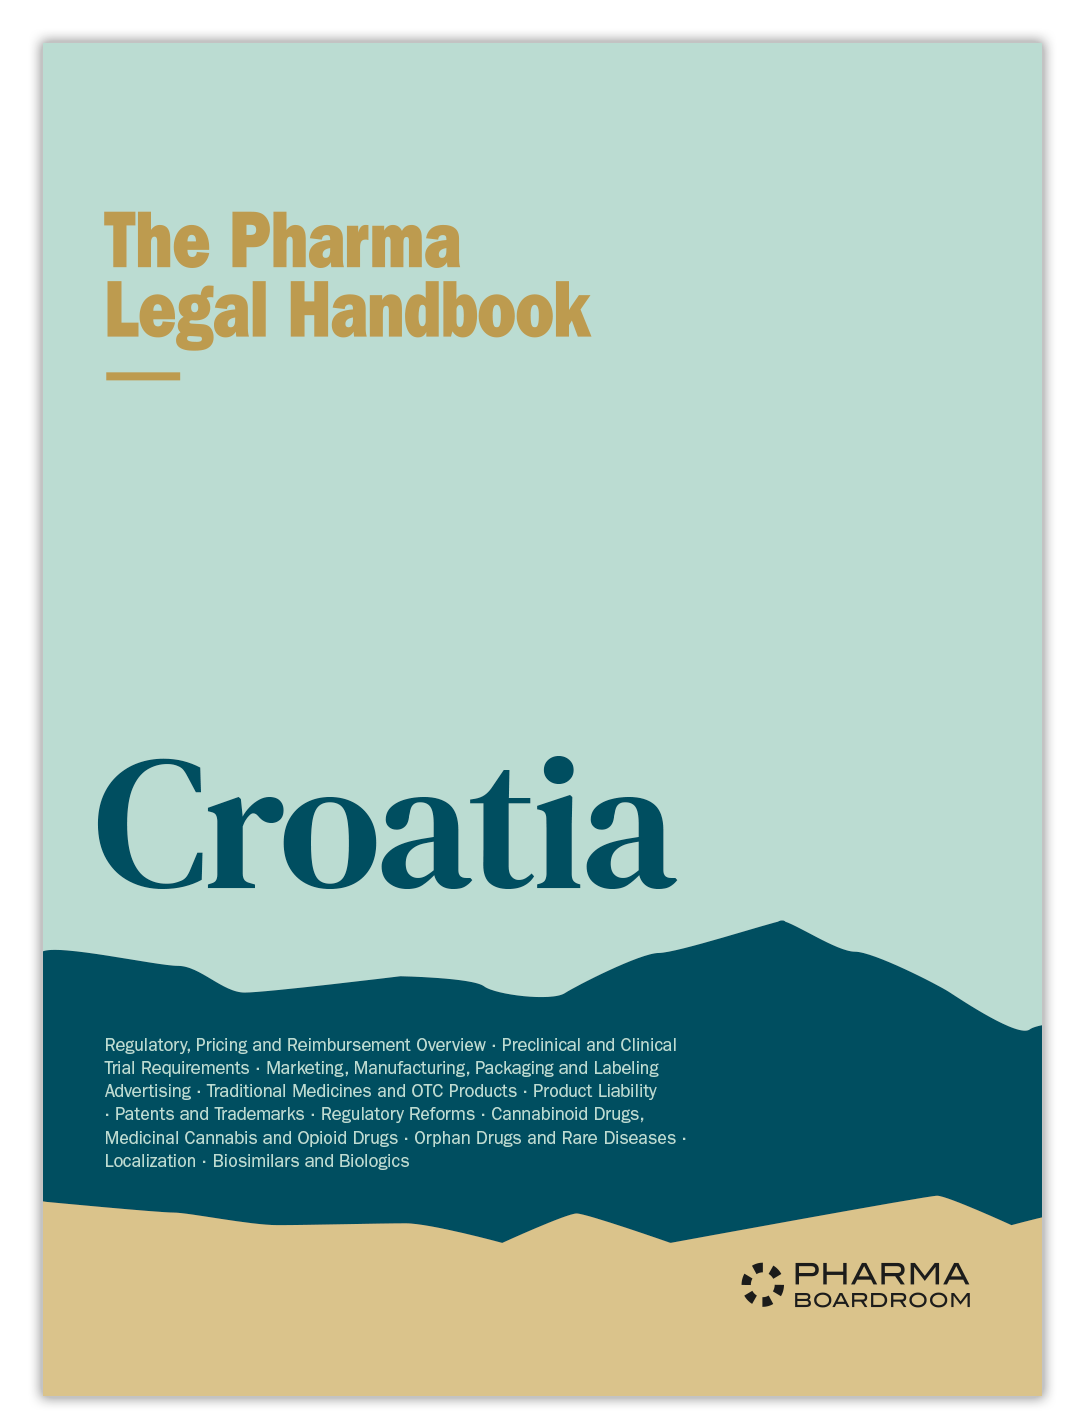 The Pharma Legal Handbook: Croatia